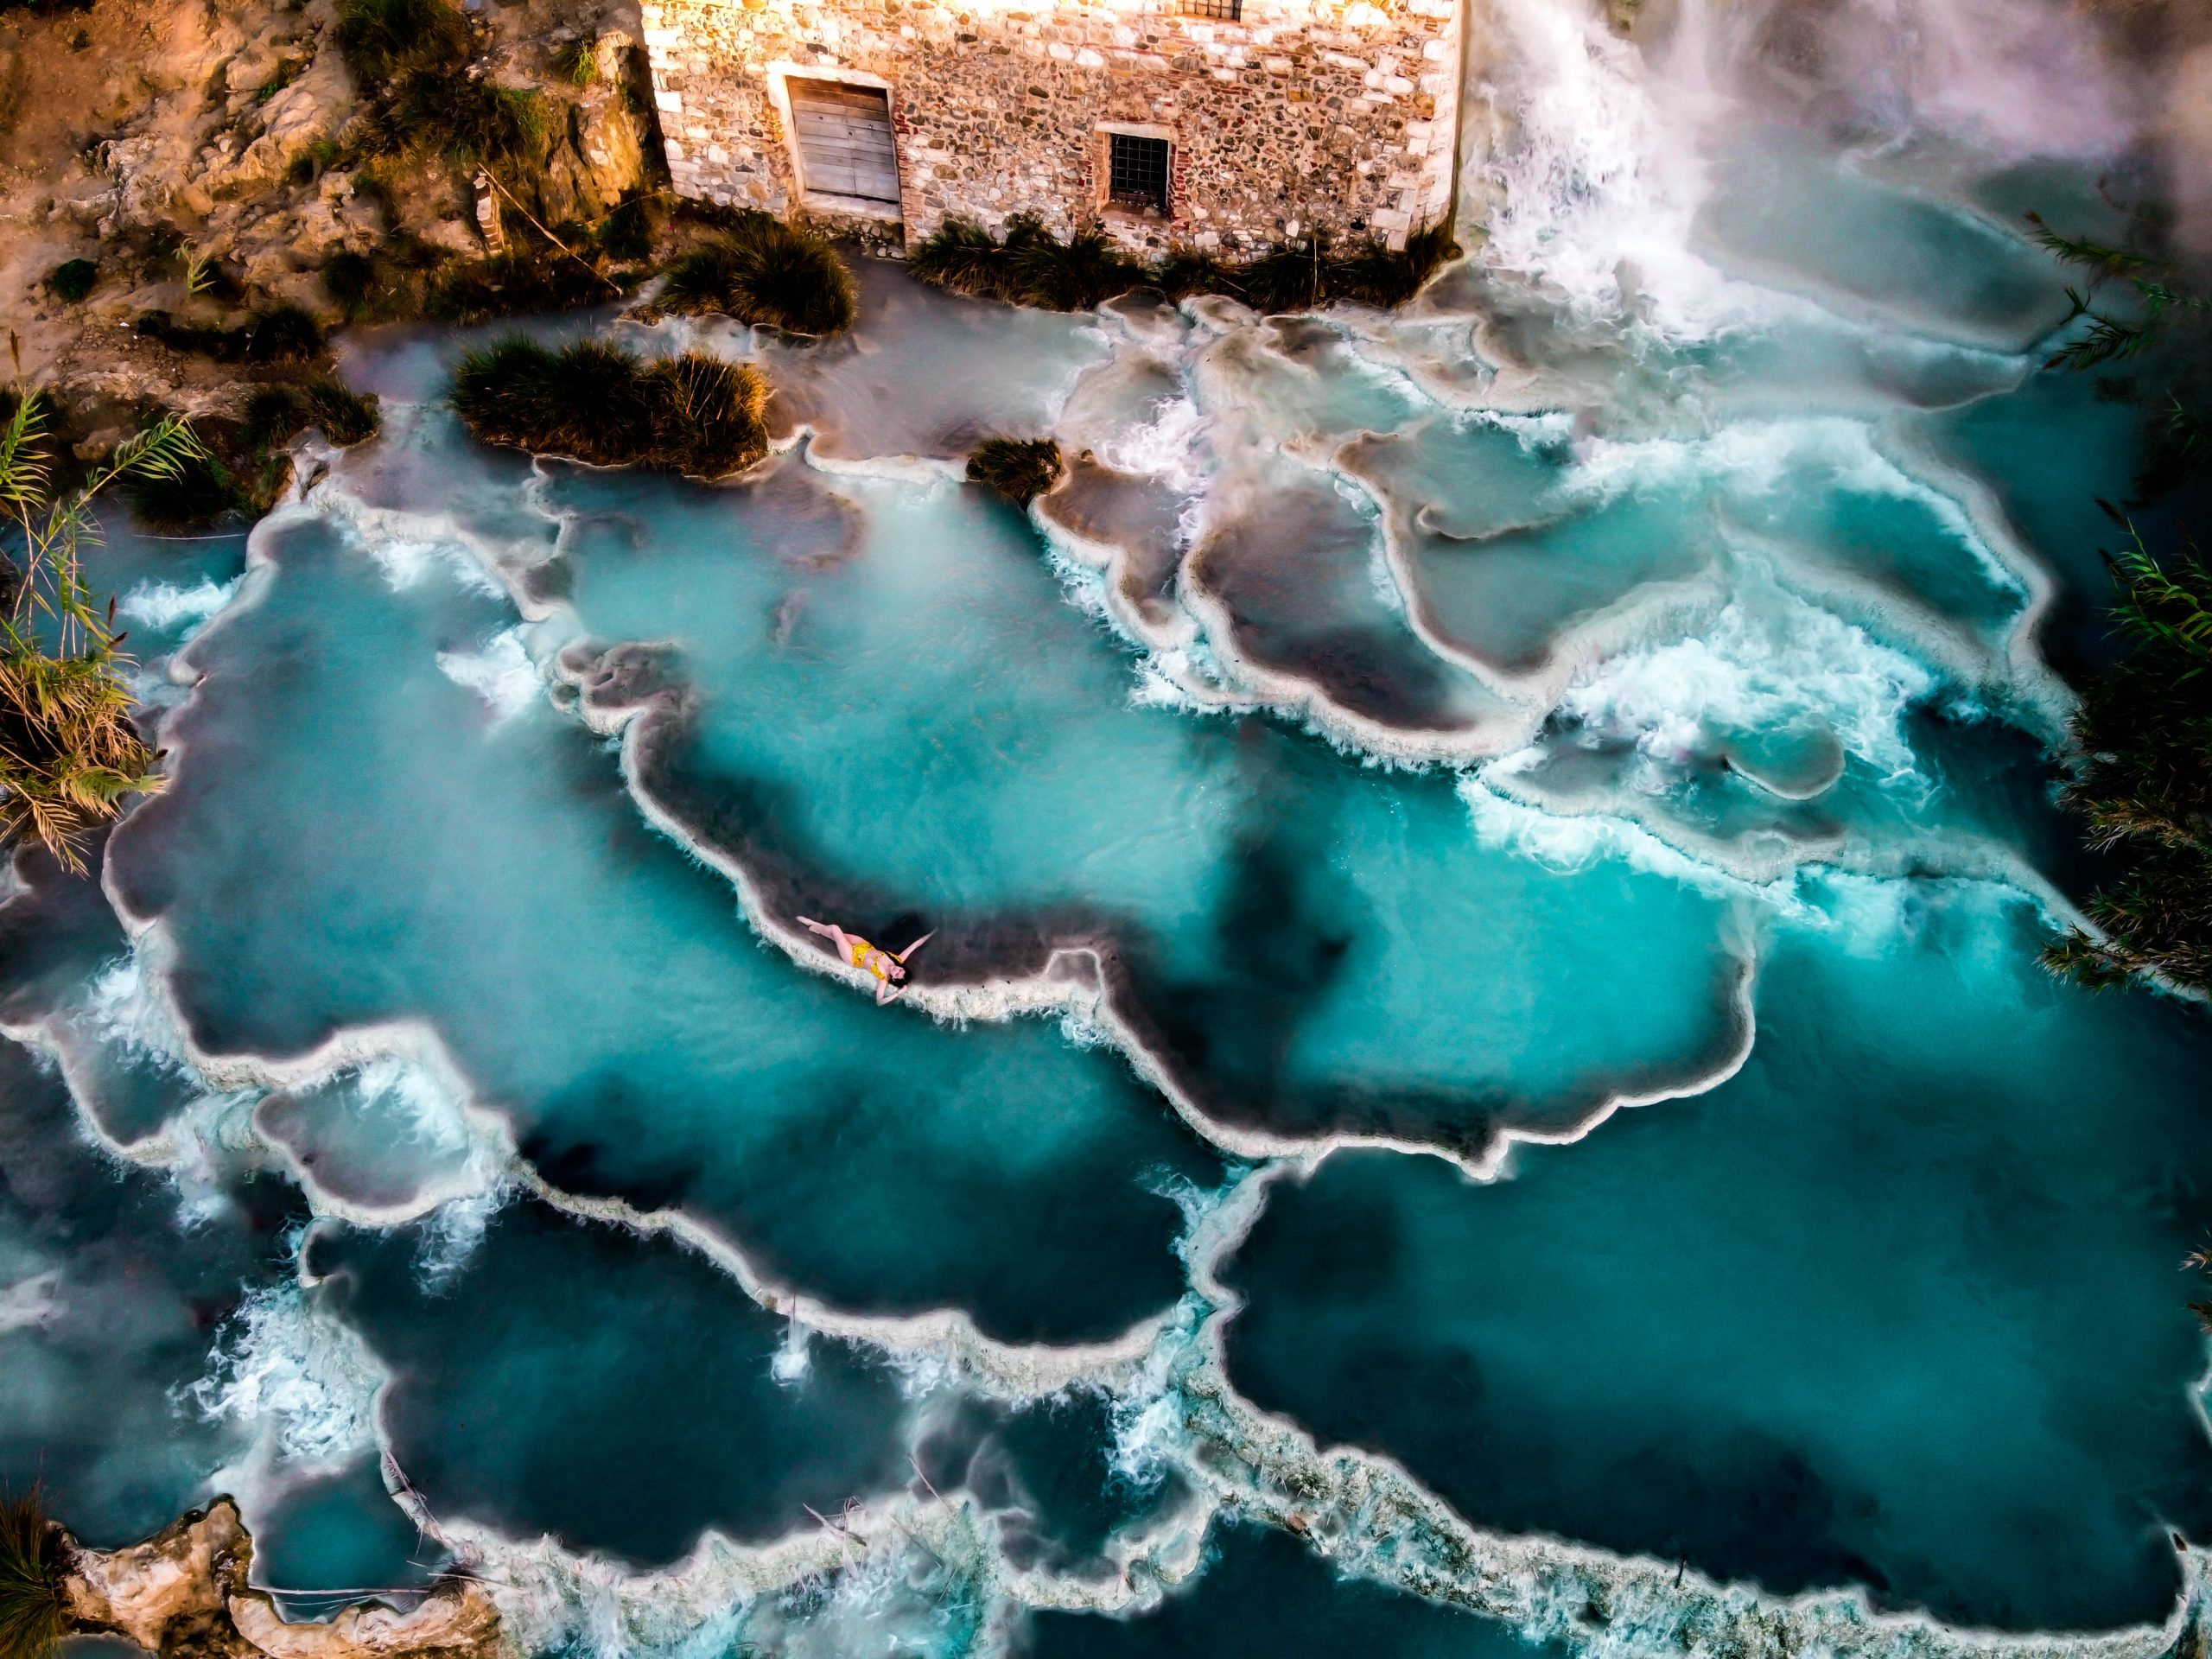 eva phan cascate del mulino instagrammable spots terme di saturnia natural hot springs tuscany thermal bath spa italy solo female travel province of grosseto italy where to go tuscany dji mavic mini drone photography shein inexpensive yellow high waisted bikini